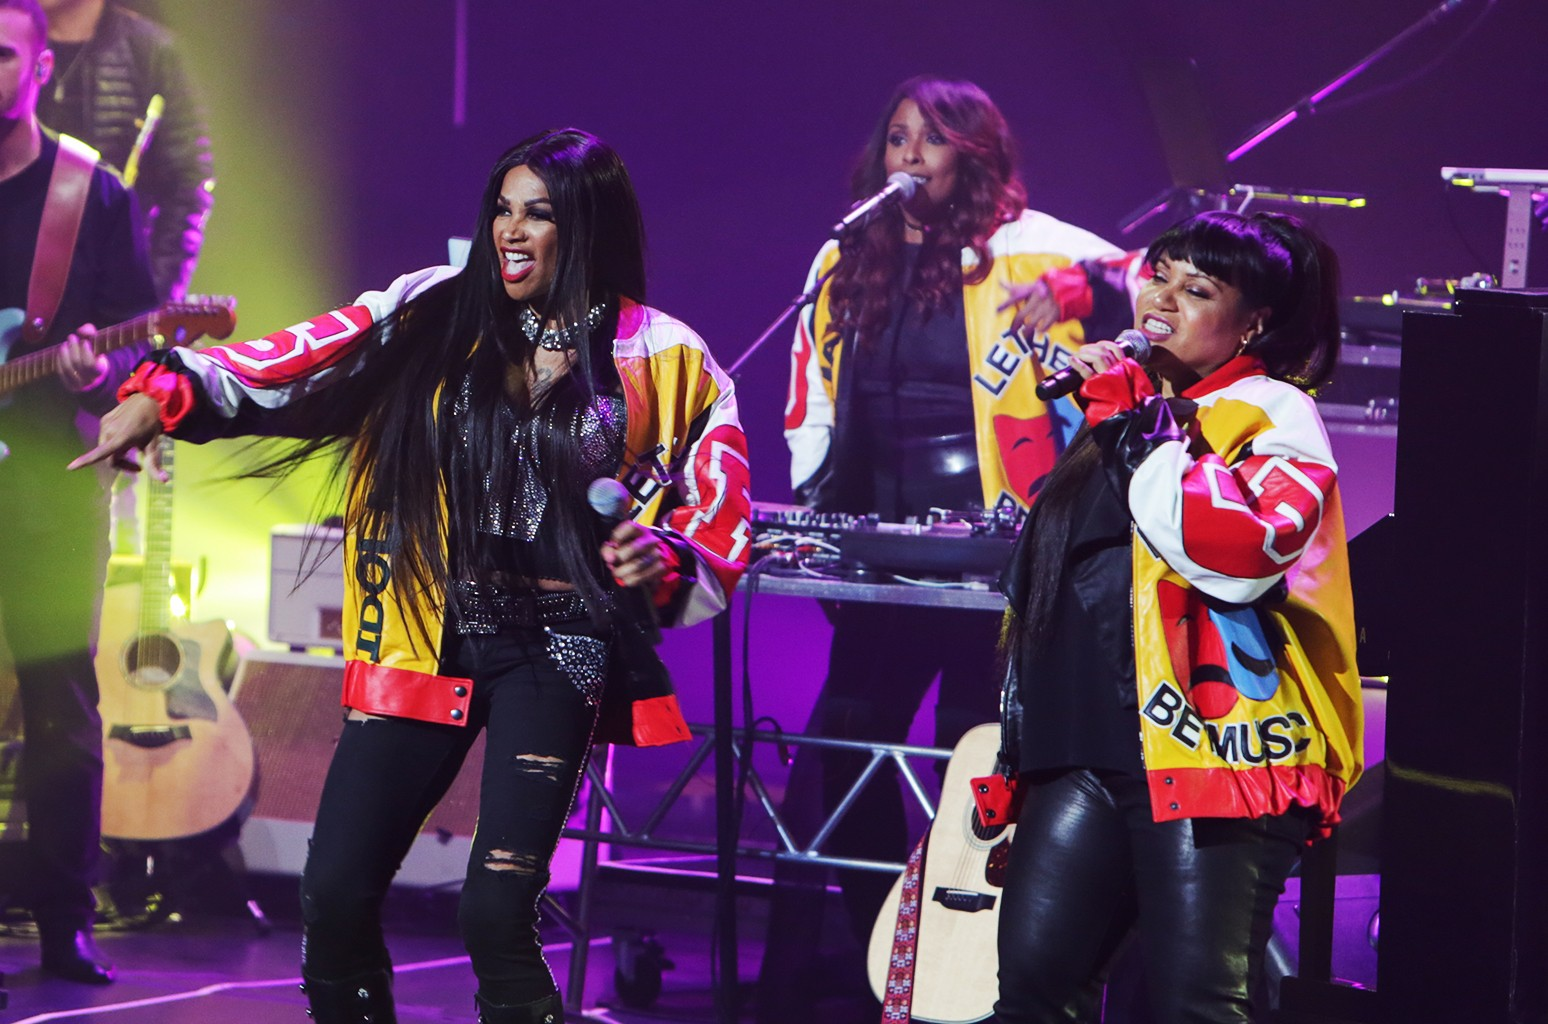 Salt N' Pepa perform at the Keep a Child Alive Black Ball at Hammerstein Ballroom in New York City on Oct. 19, 2016.